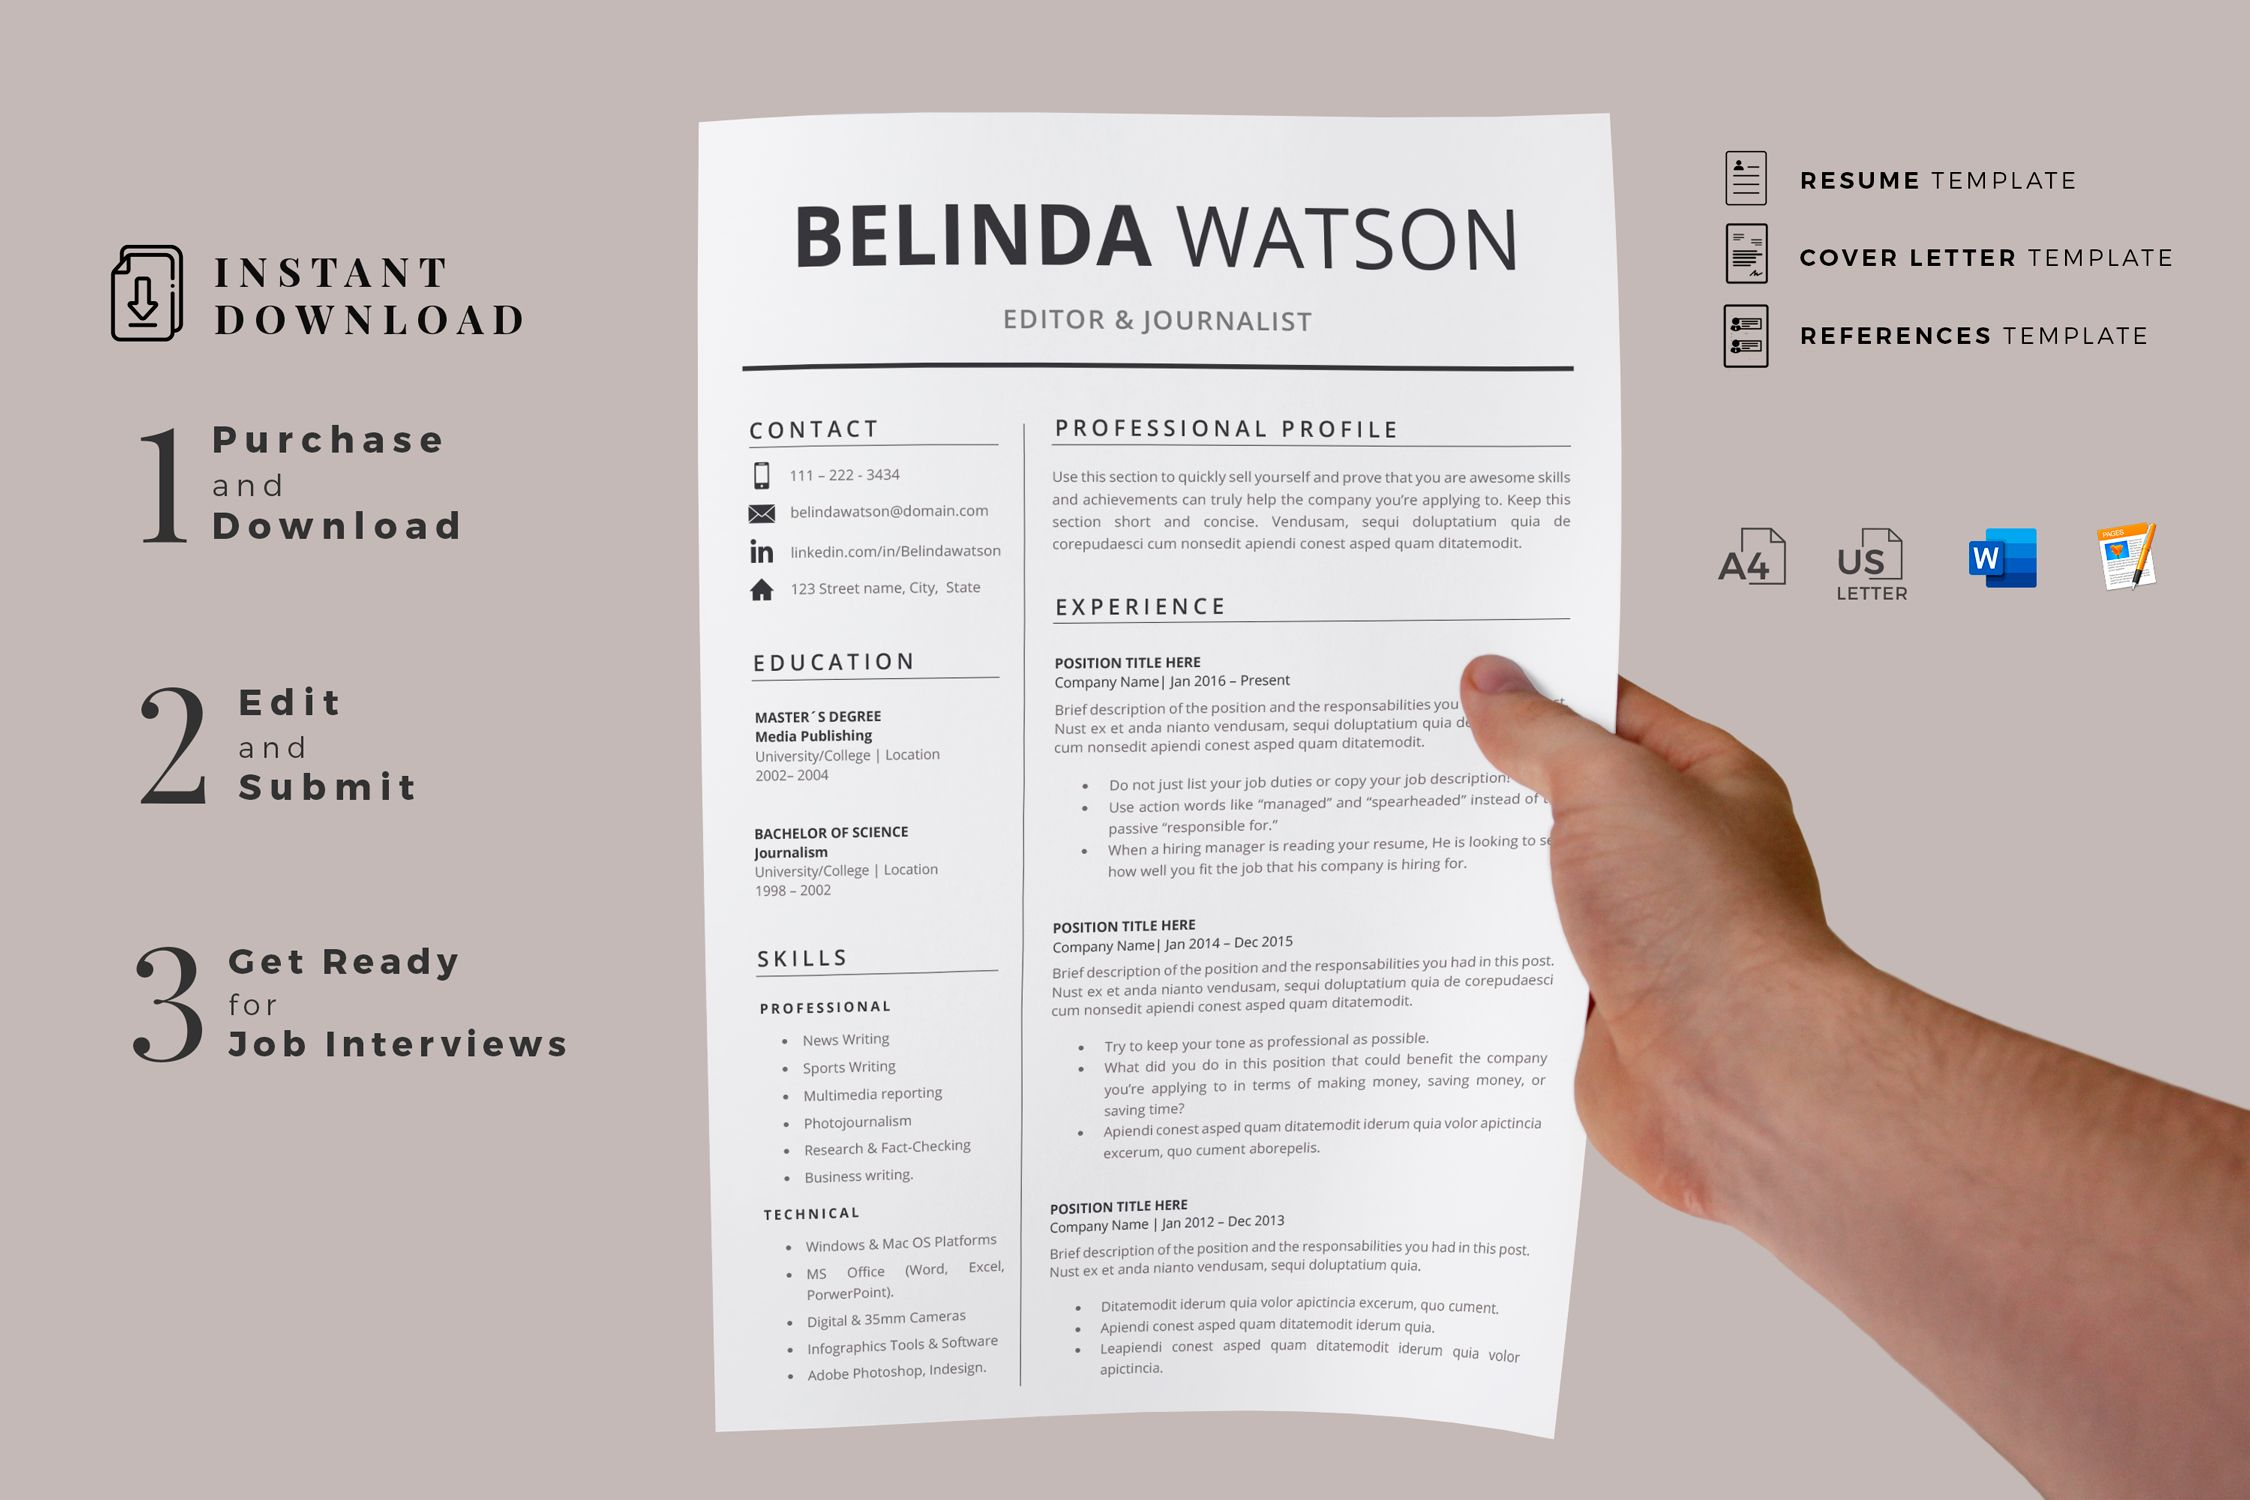 Creative Resume Templates For Ms Word And Mac Pages Professional Resume Templates And Matching Co Creative Resume Templates Resume Design Modern Resume Design